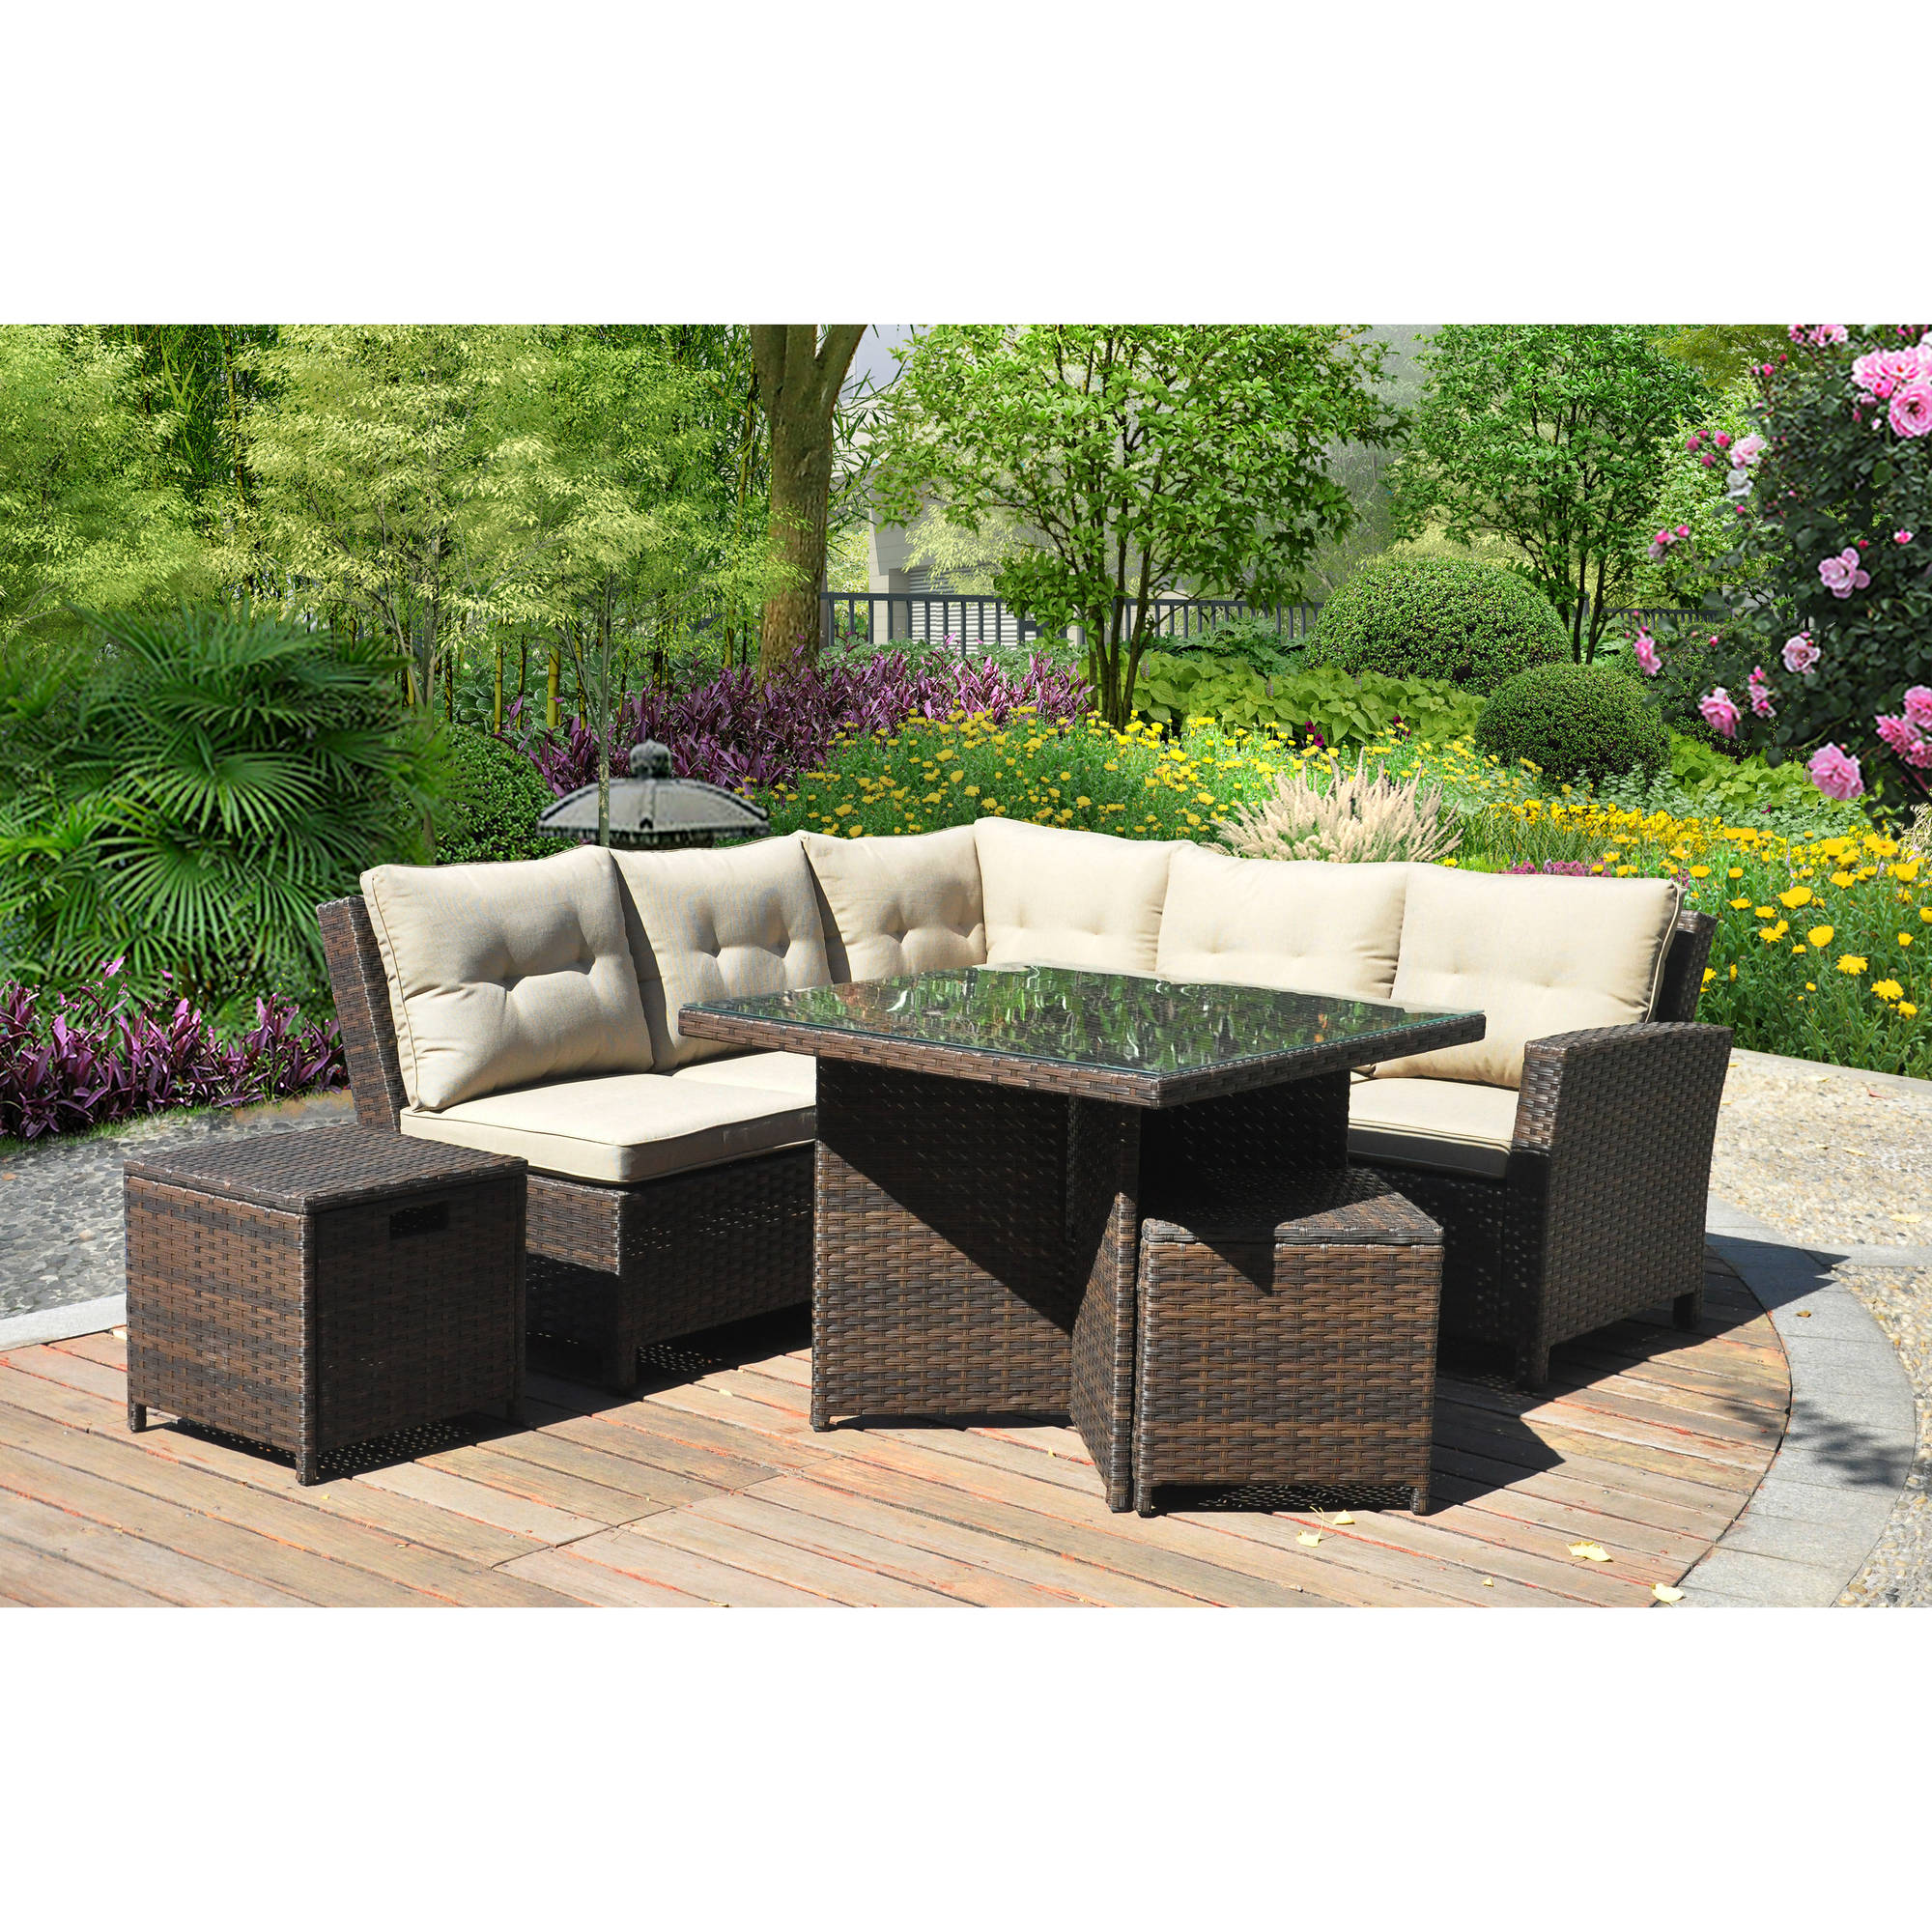 Lovely Better Homes And Gardens Baytown 5 Piece Woven Sectional Sofa Set, Seats 5    Walmart.com